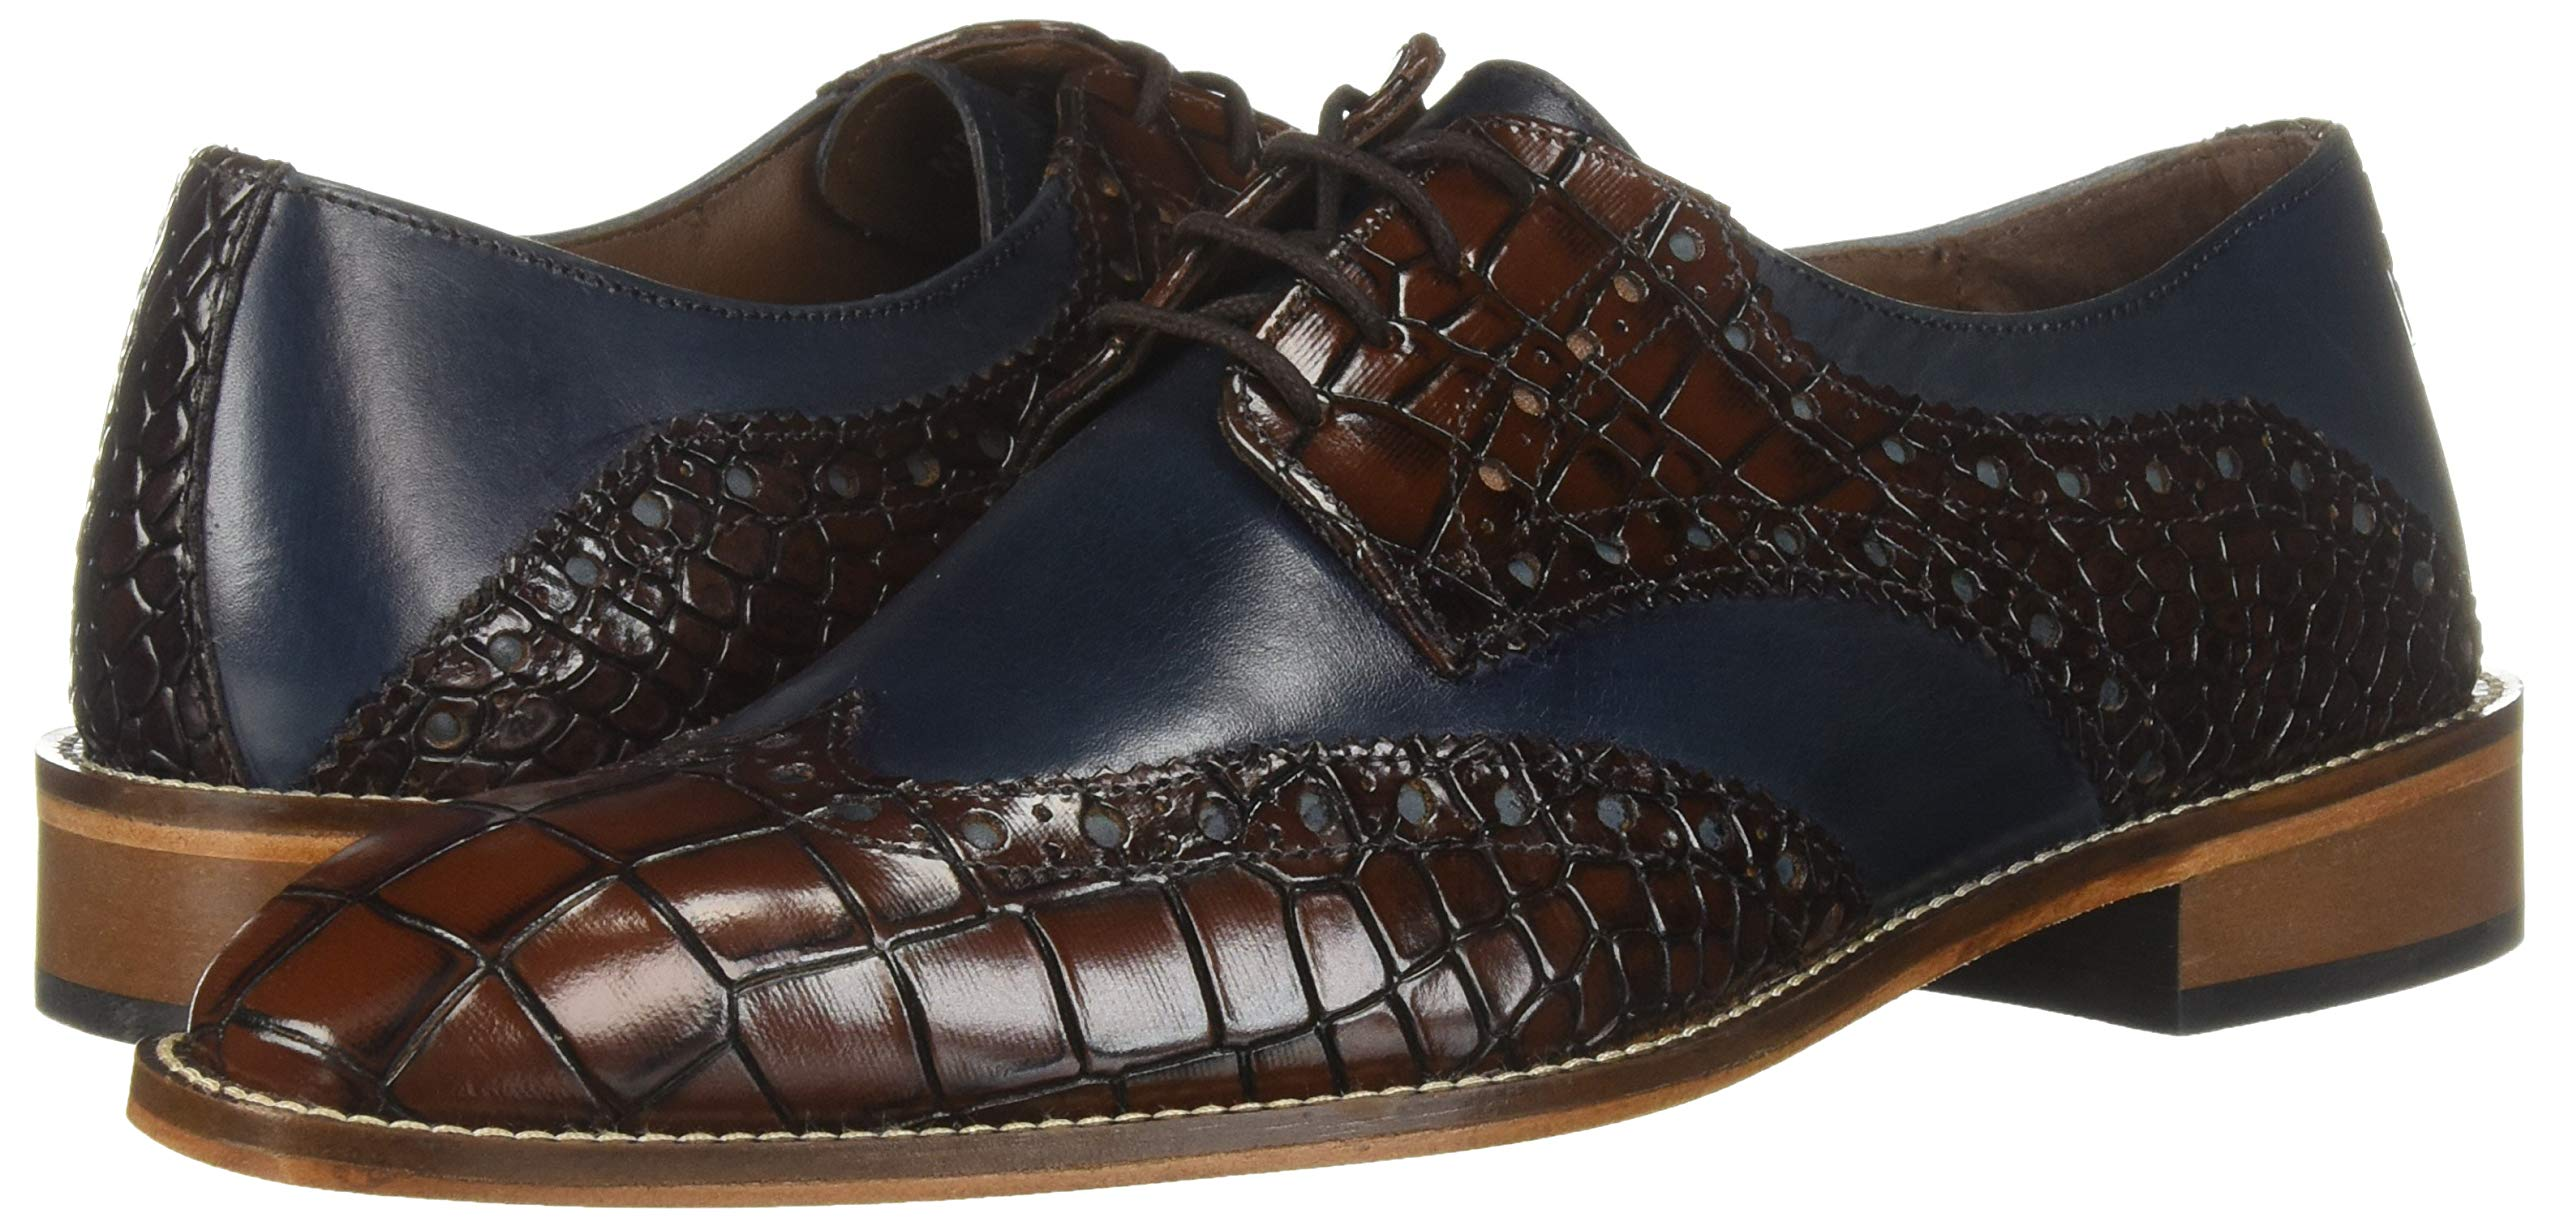 Stacy Adams Mens Tomaselli Leather Lace Up Dress Oxfords